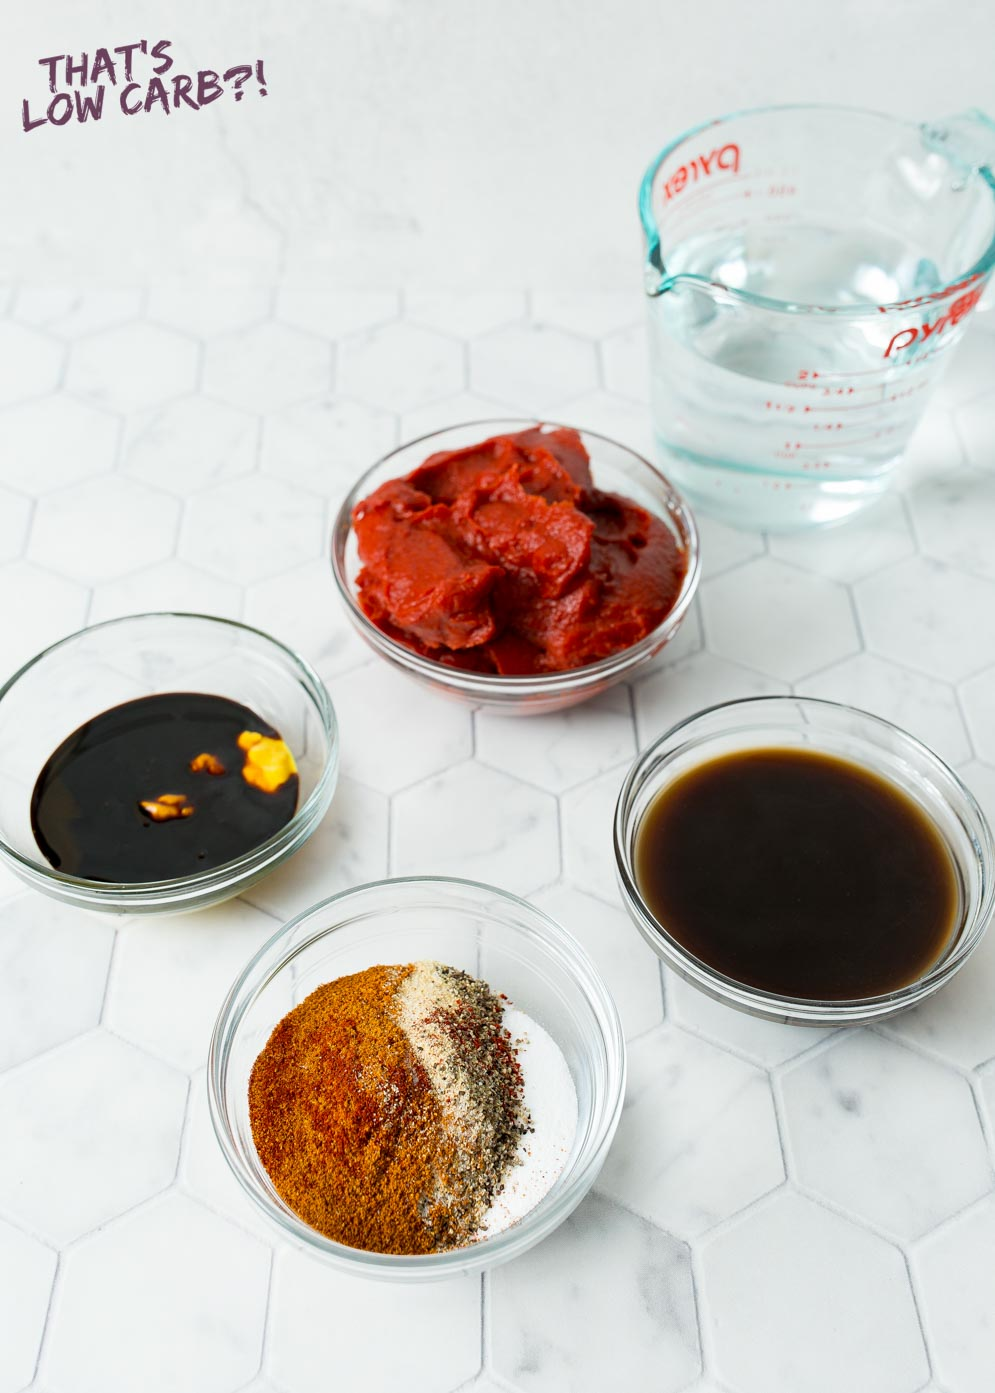 Ingredients displayed out what is needed to make low carb barbecue sauce